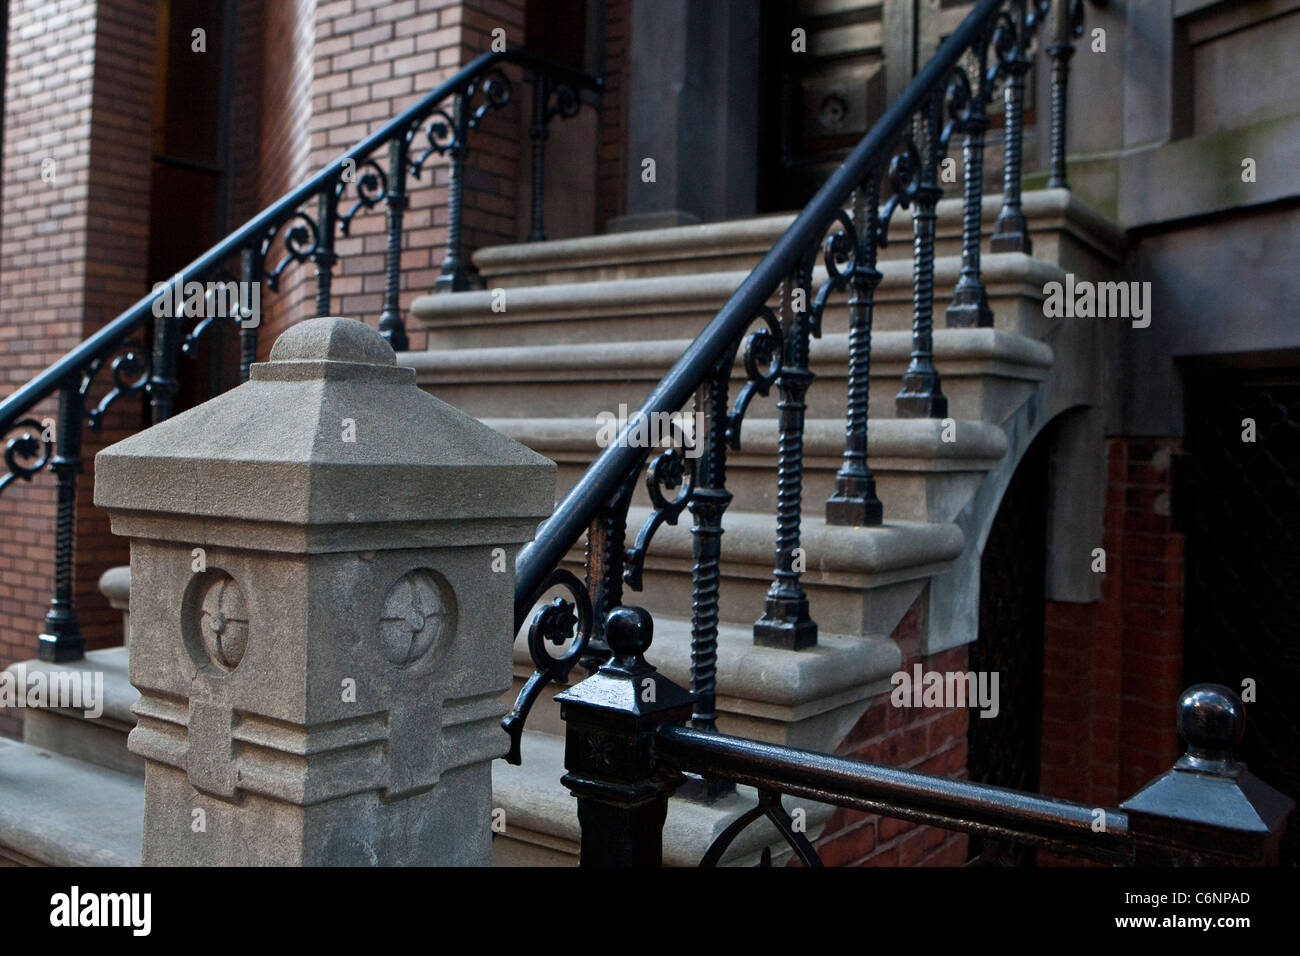 Cast Iron railings is pictured on a Brooklyn Heights building in the New York City borough of Brooklyn - Stock Image